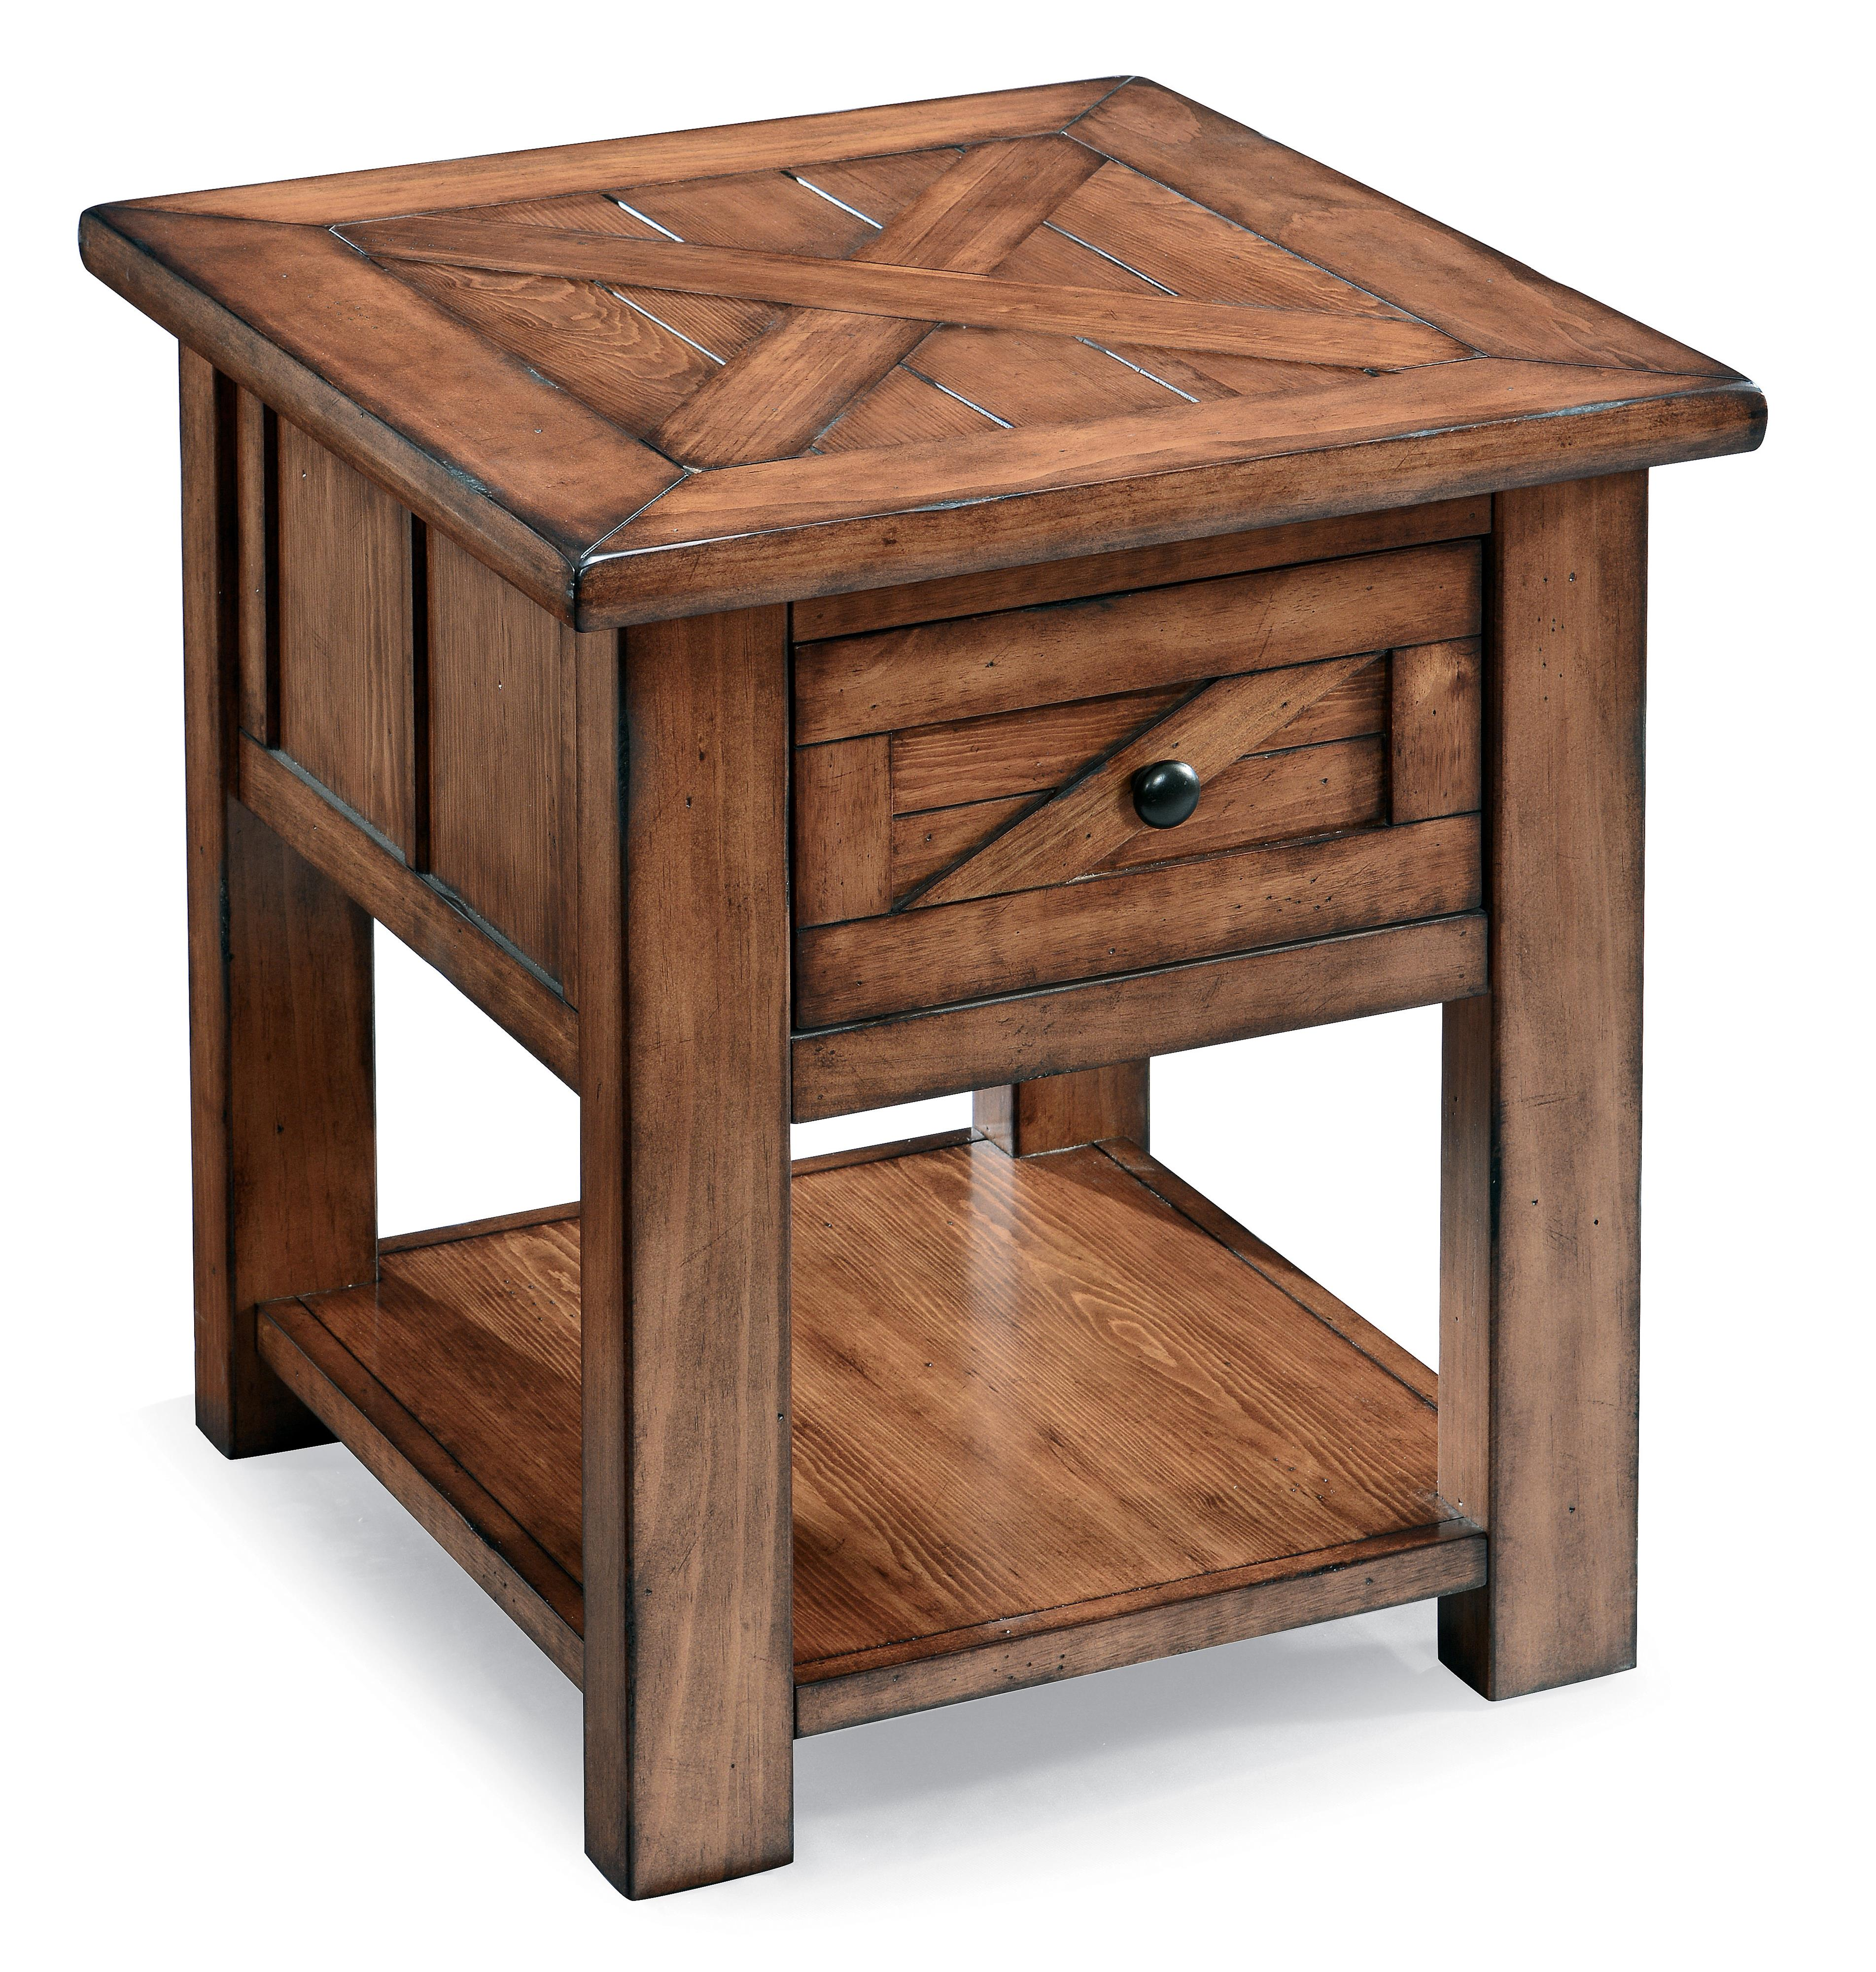 Magnussen Home Harper Farm Rectangular End Table - Item Number: T3269-03